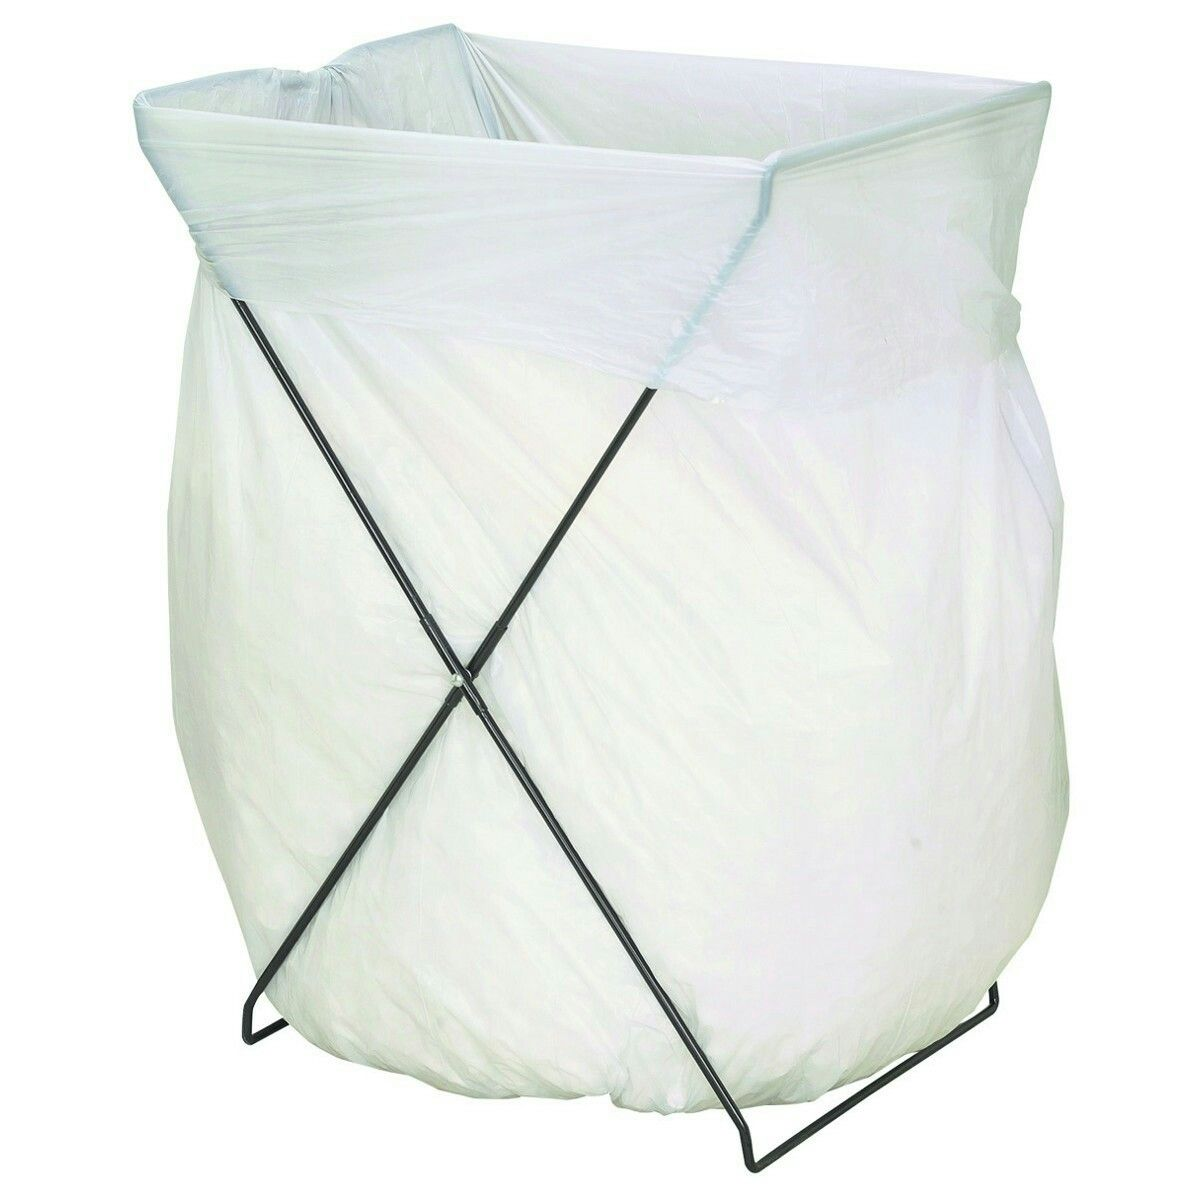 This Folding Trash Bag Stand And Holder Makes It Easy To Get Leaves And  Other Debris Into A Trash Bag. This Metal Stand Features Heavy Duty Welded  Steel ...